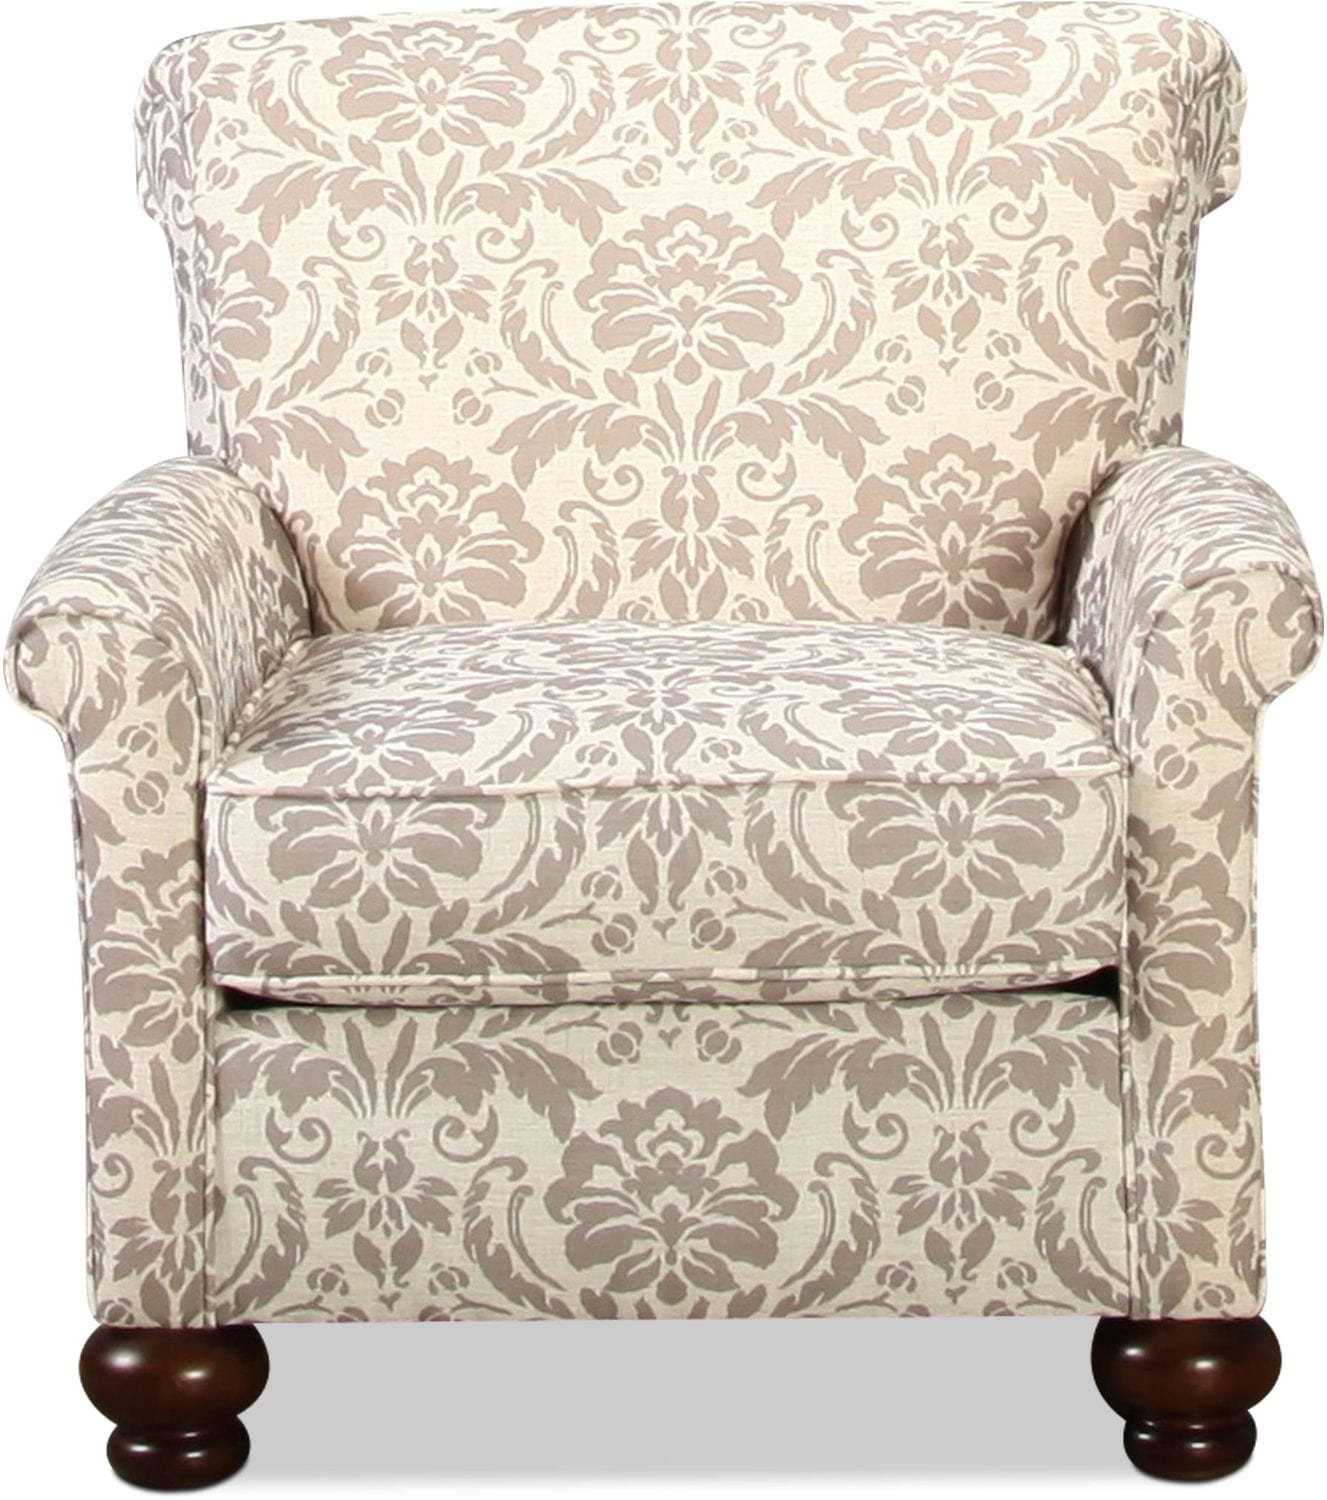 Living Room Furniture - Islip Accent Chair - Floral